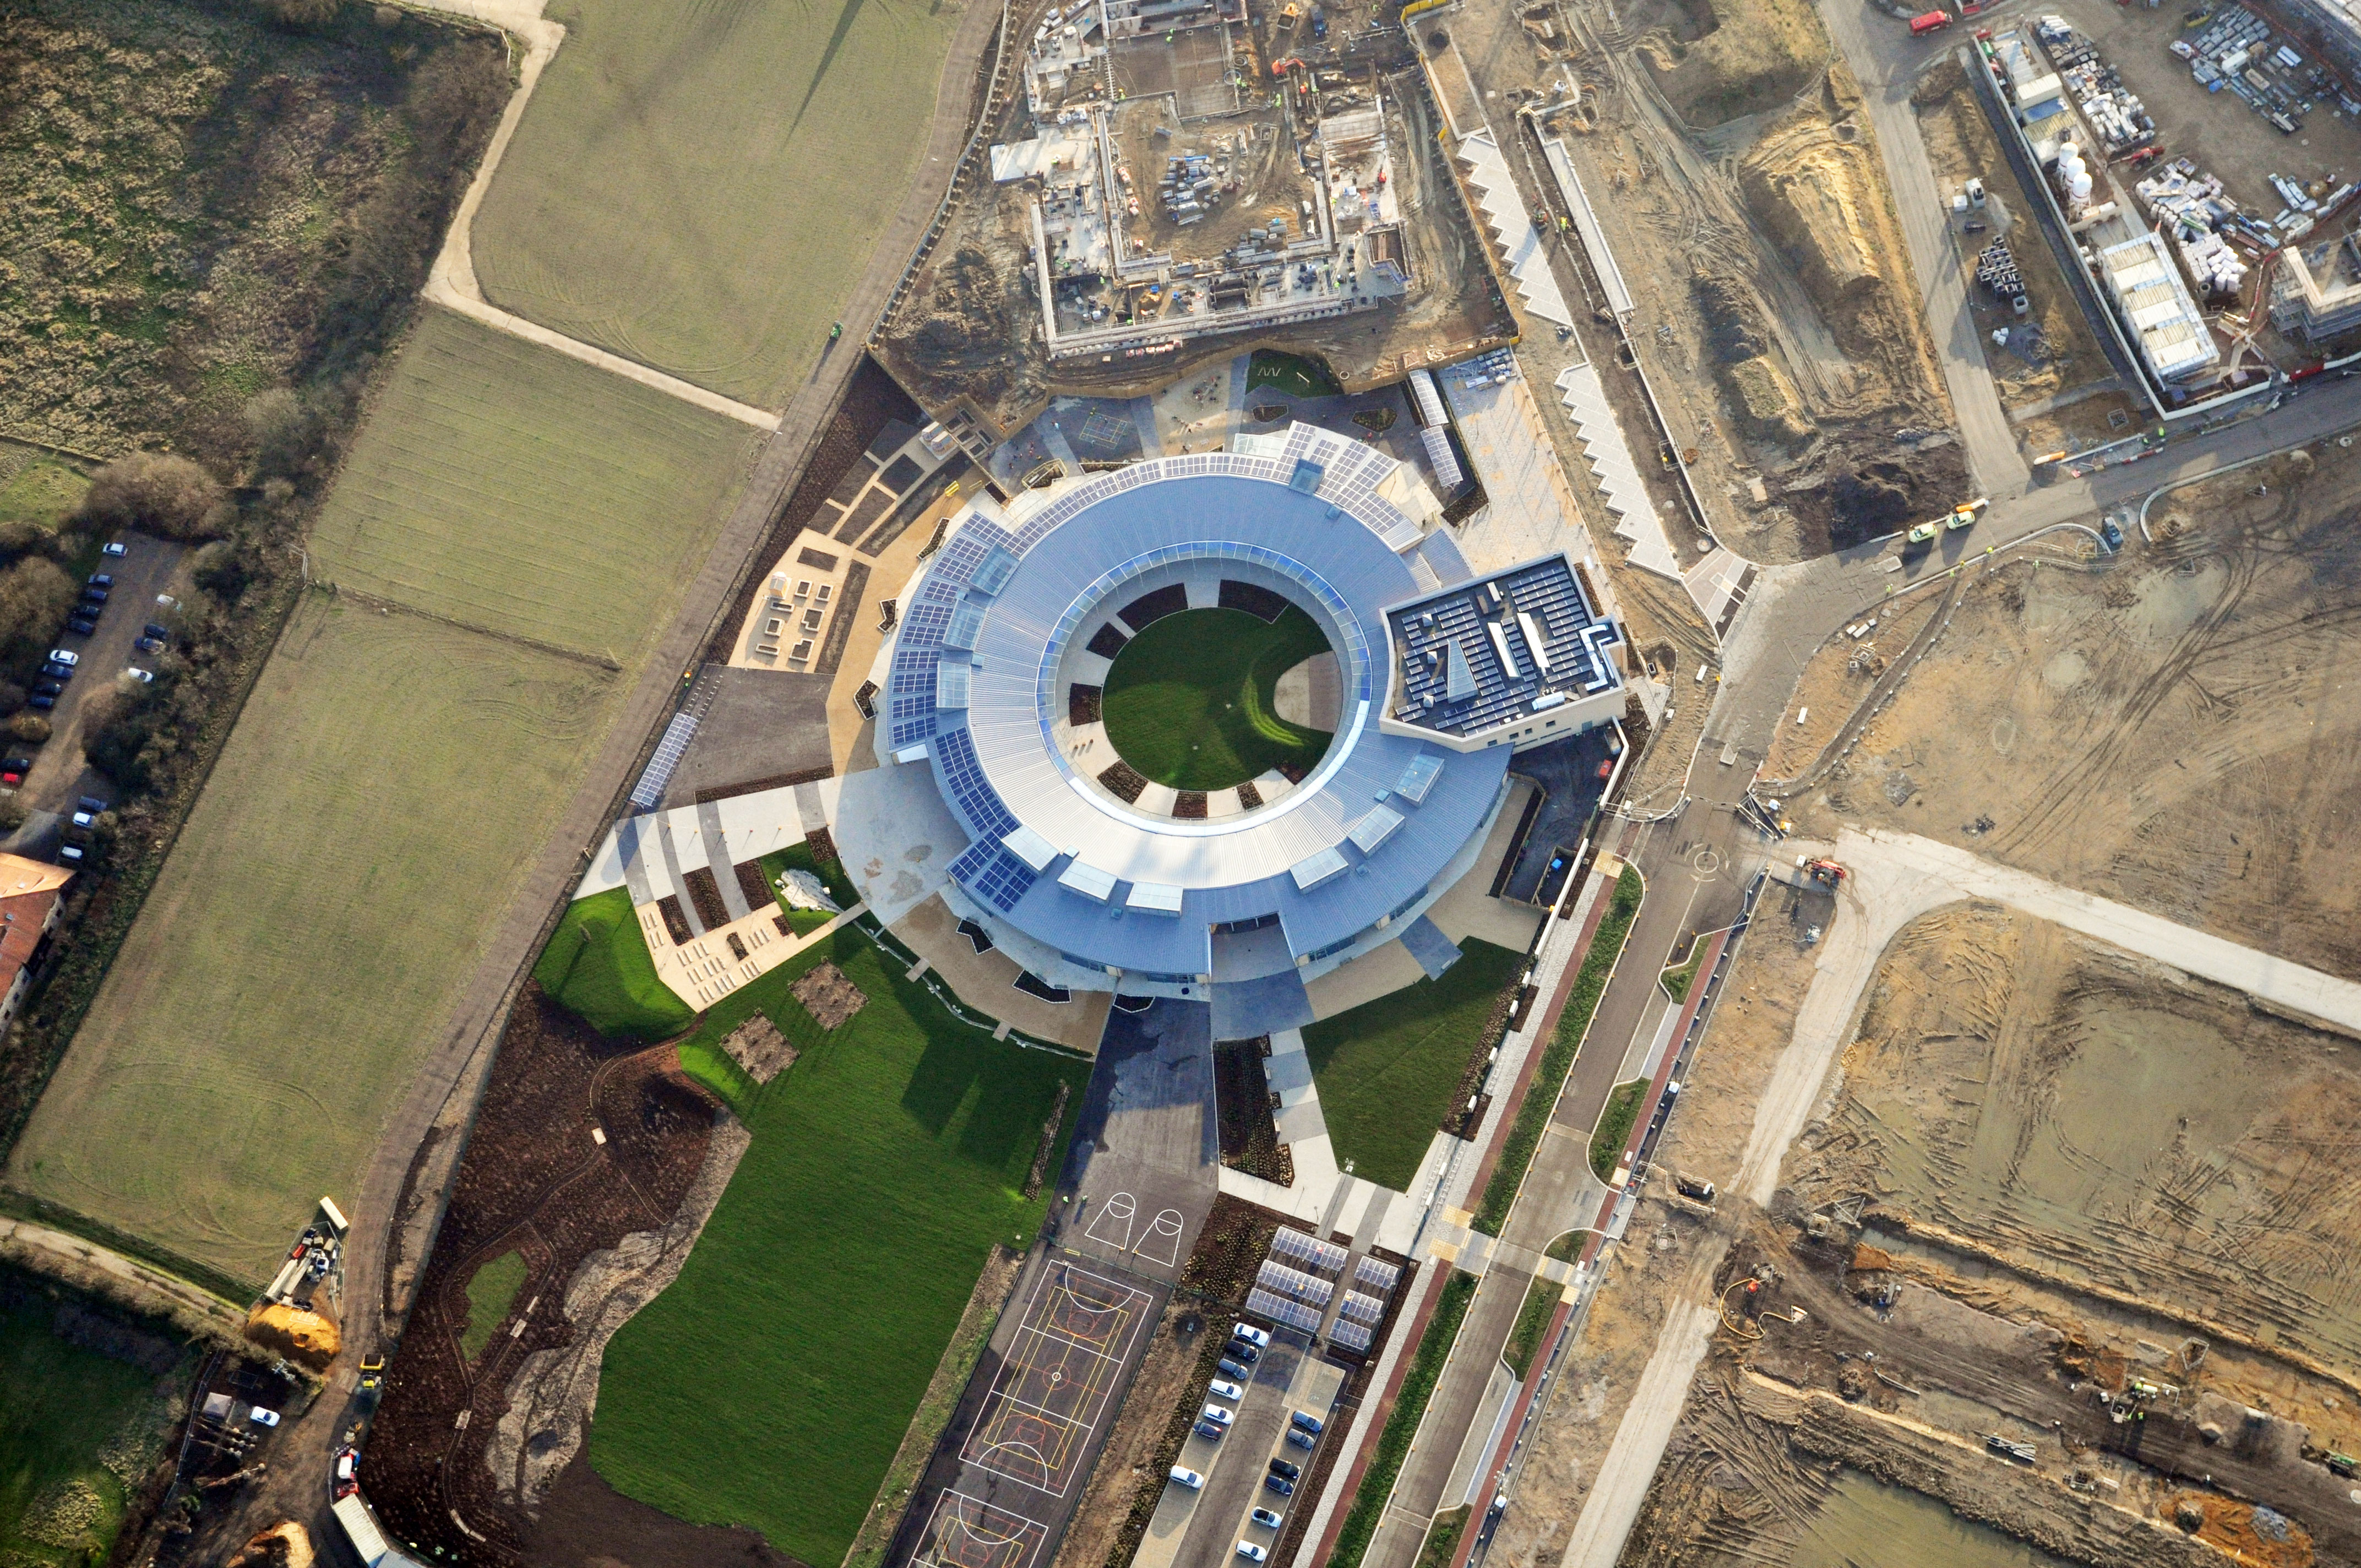 aerial view - University of Cambridge Primary School by Marks Barfield Architects